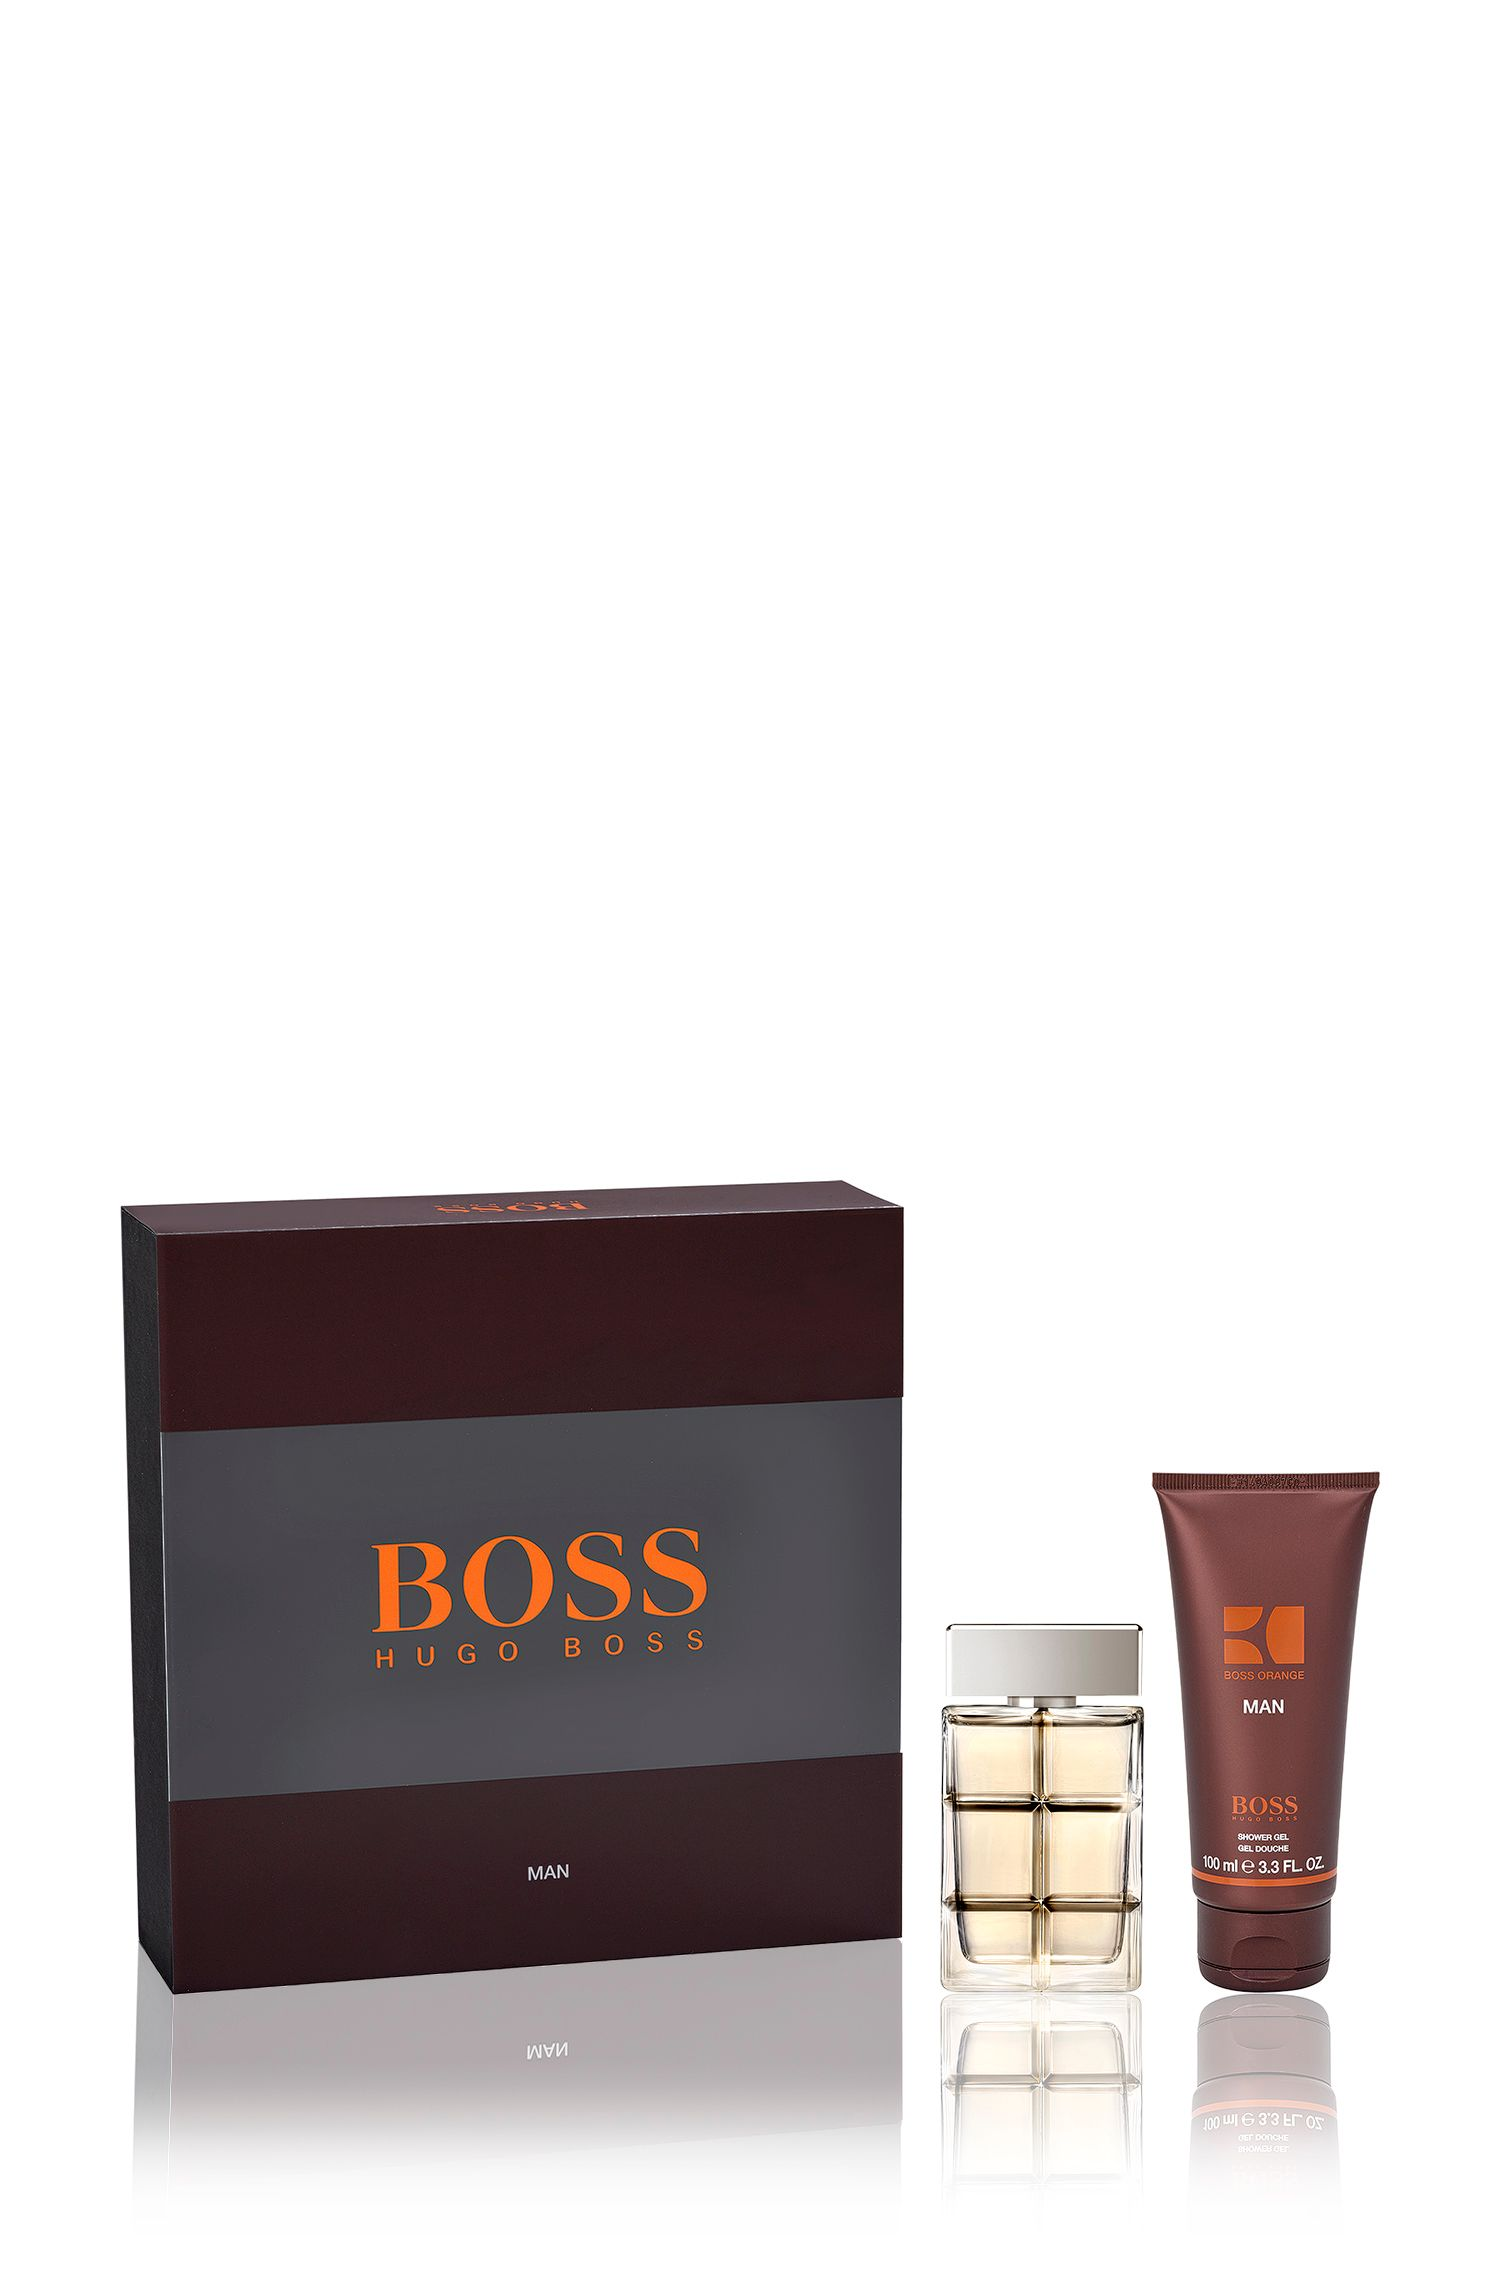 'BOSS Orange Man' gift set with Eau de Toilette 40 ml and Shower Gel